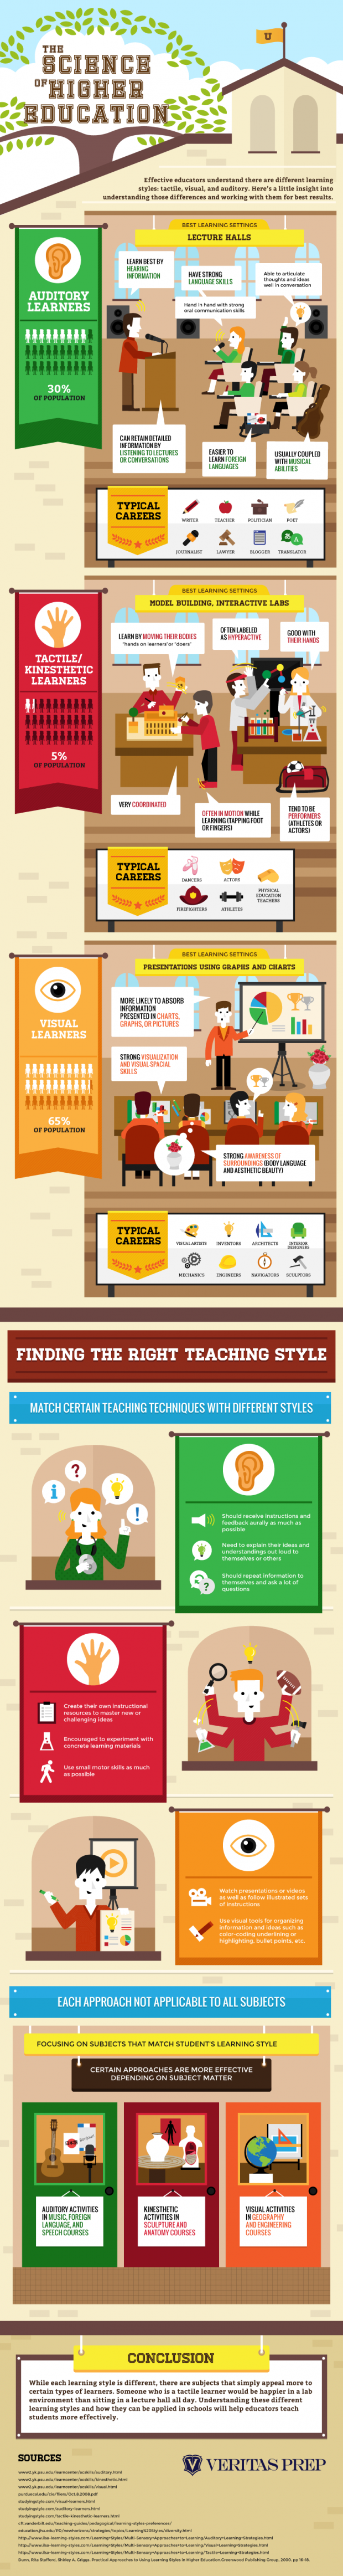 the-science-of-higher-education-infographic